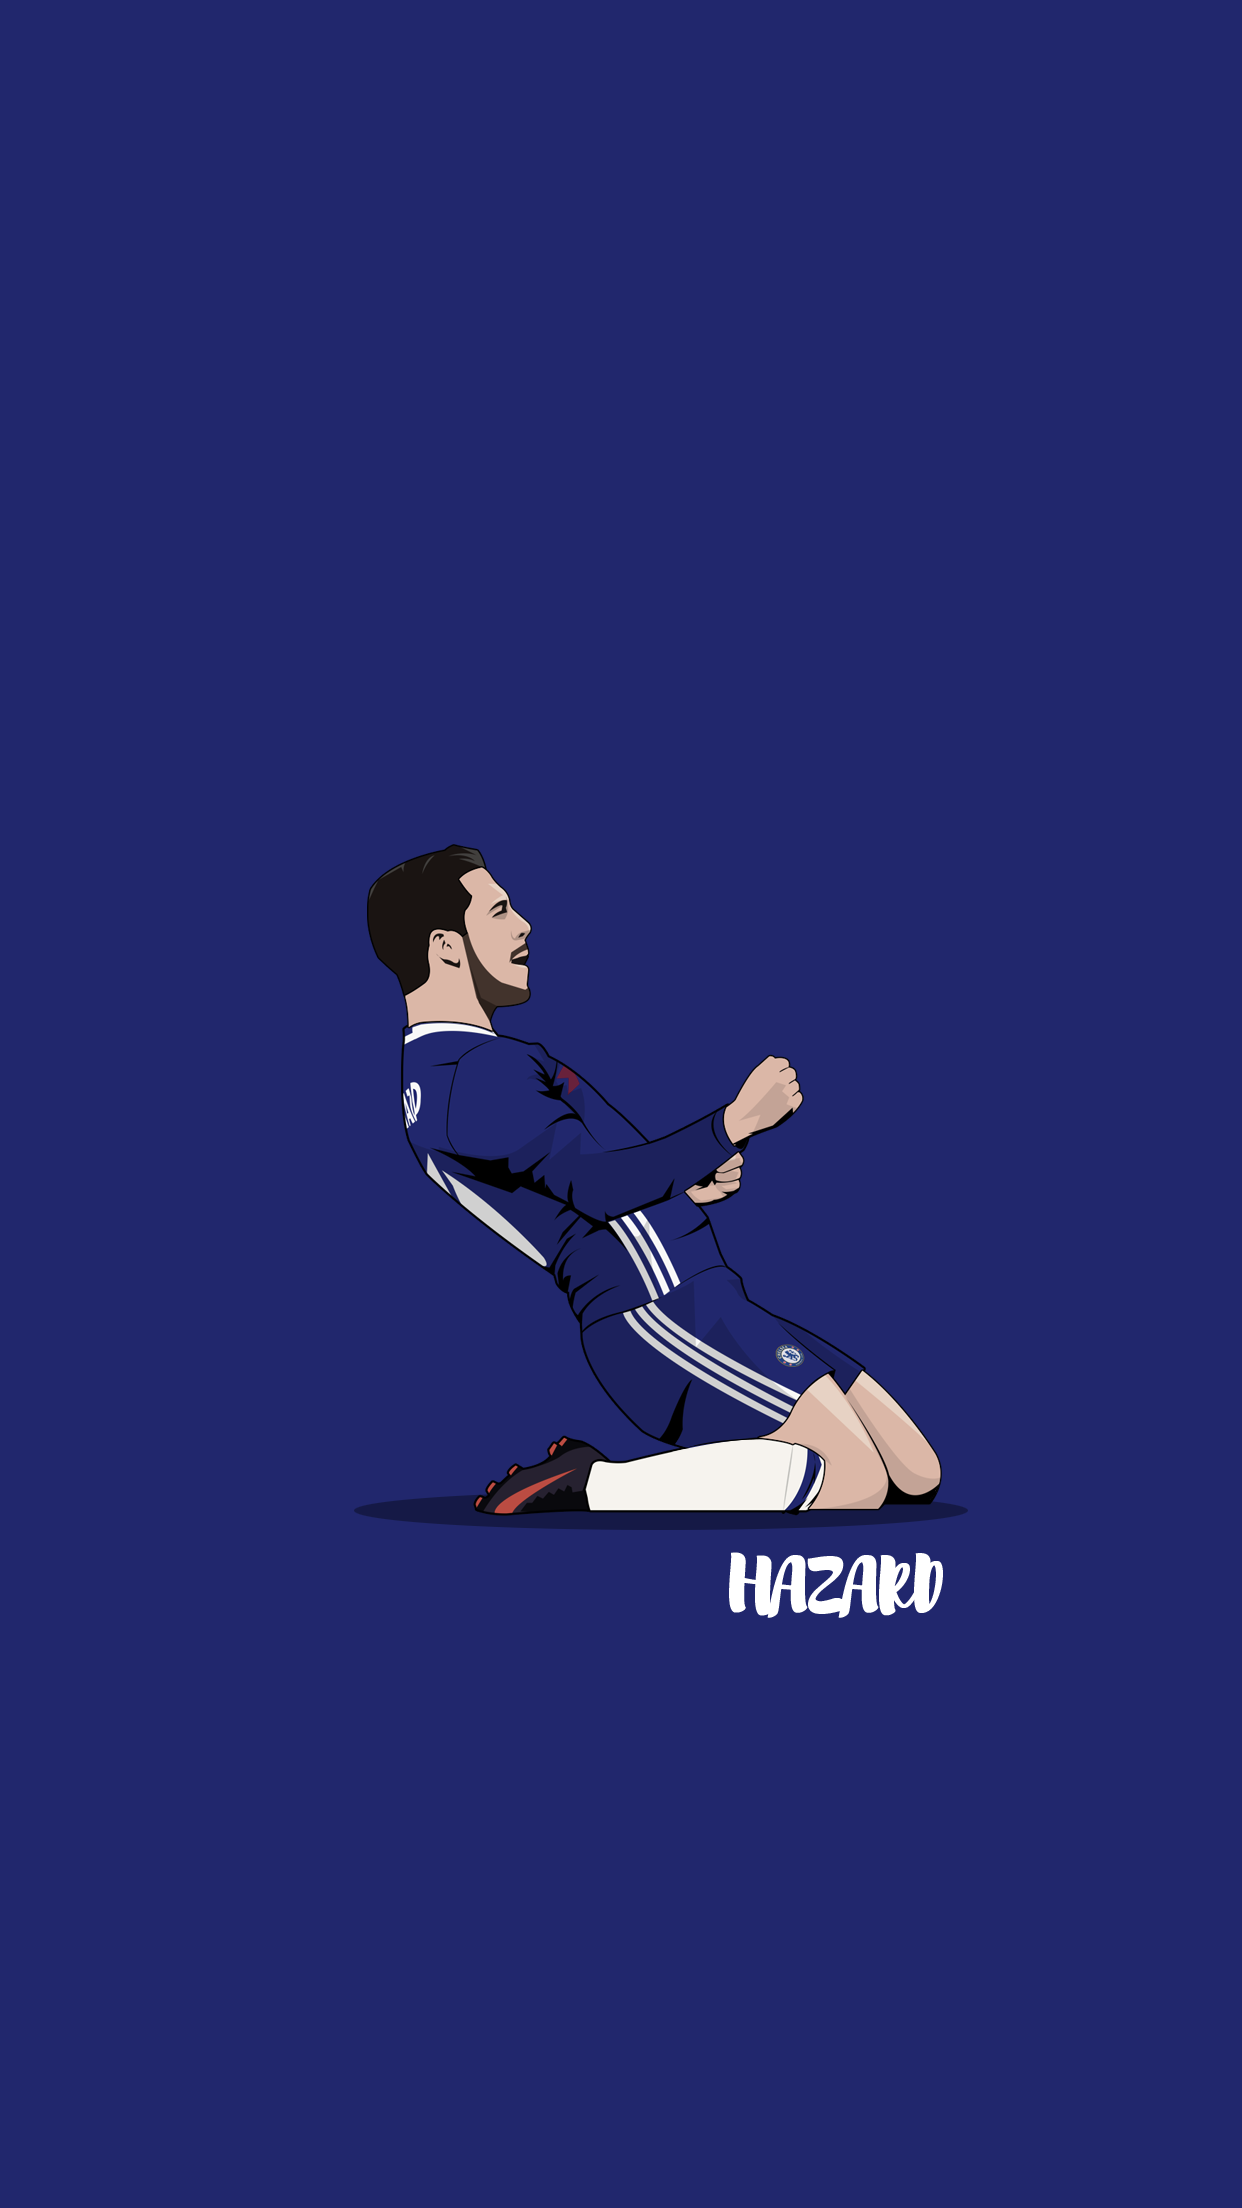 Pin By Zyro Gaymer On Messi Chelsea Football Club Wallpapers